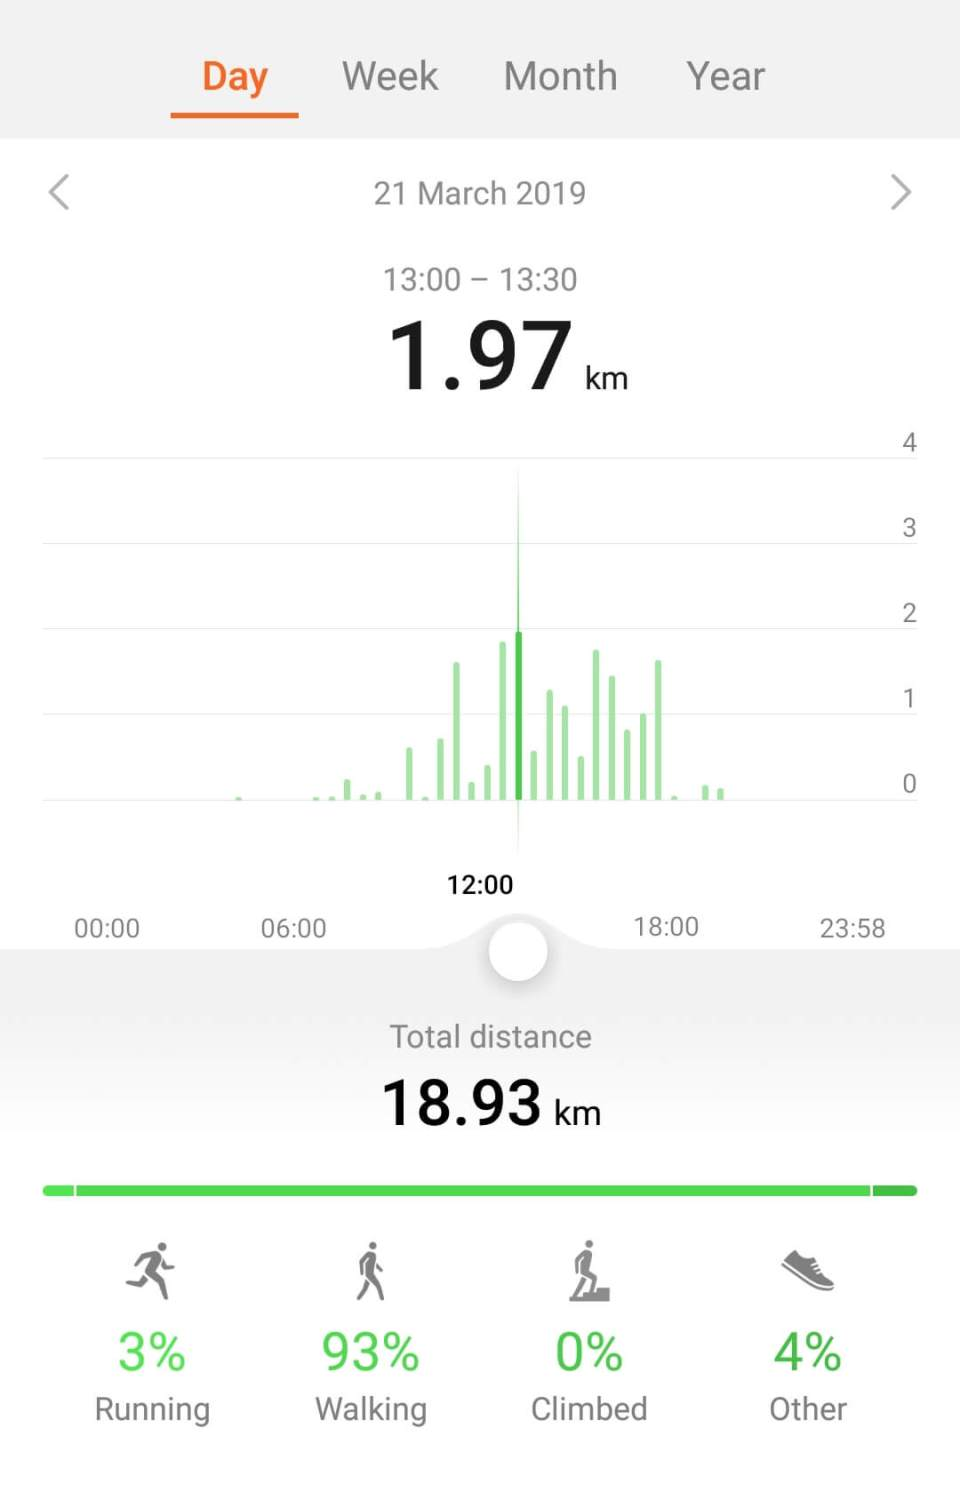 Distance covered by foot on Solo Manali Trip